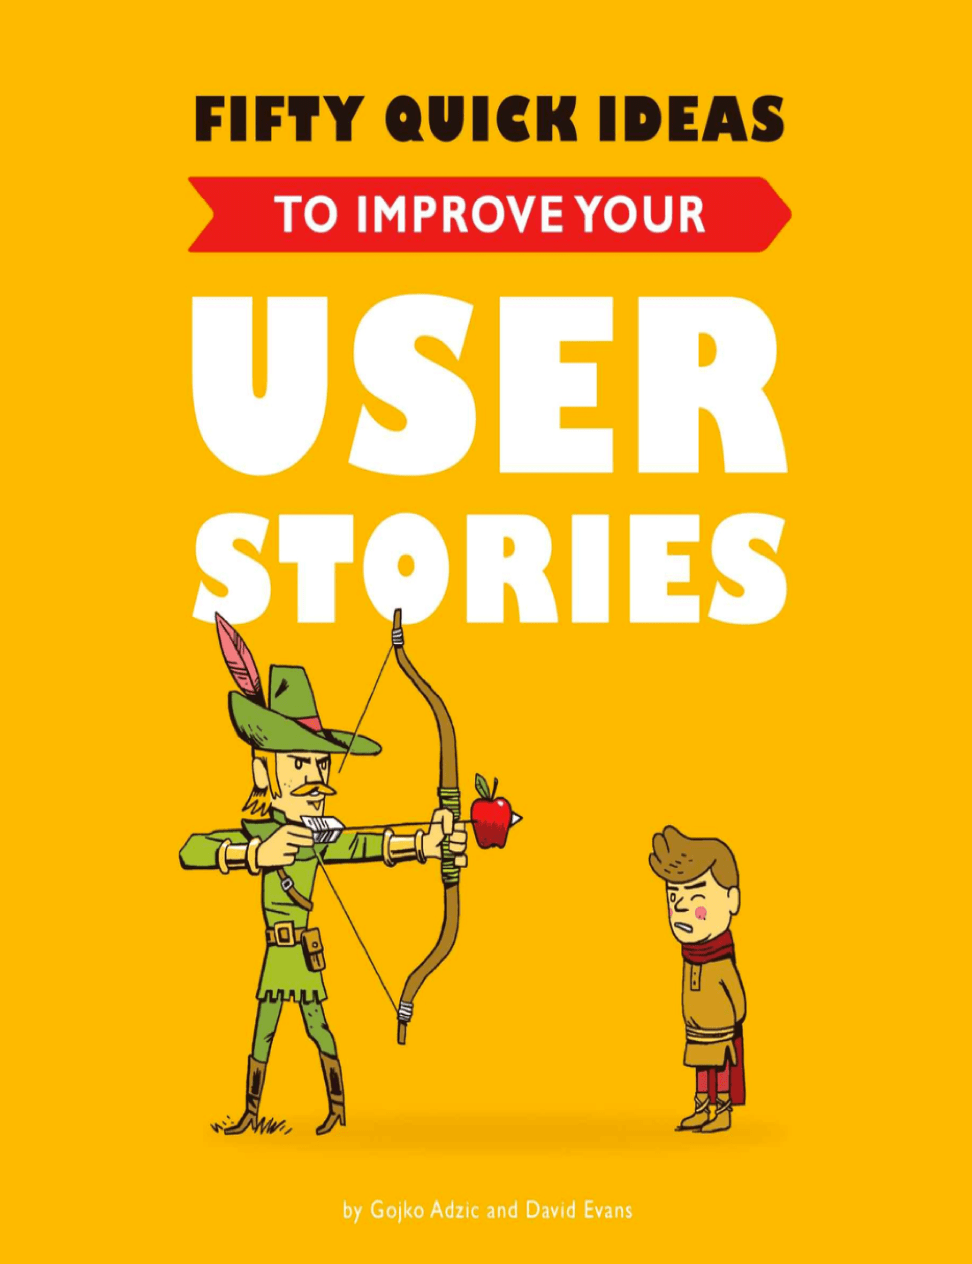 50 quick ideas to improve your user stories PDF